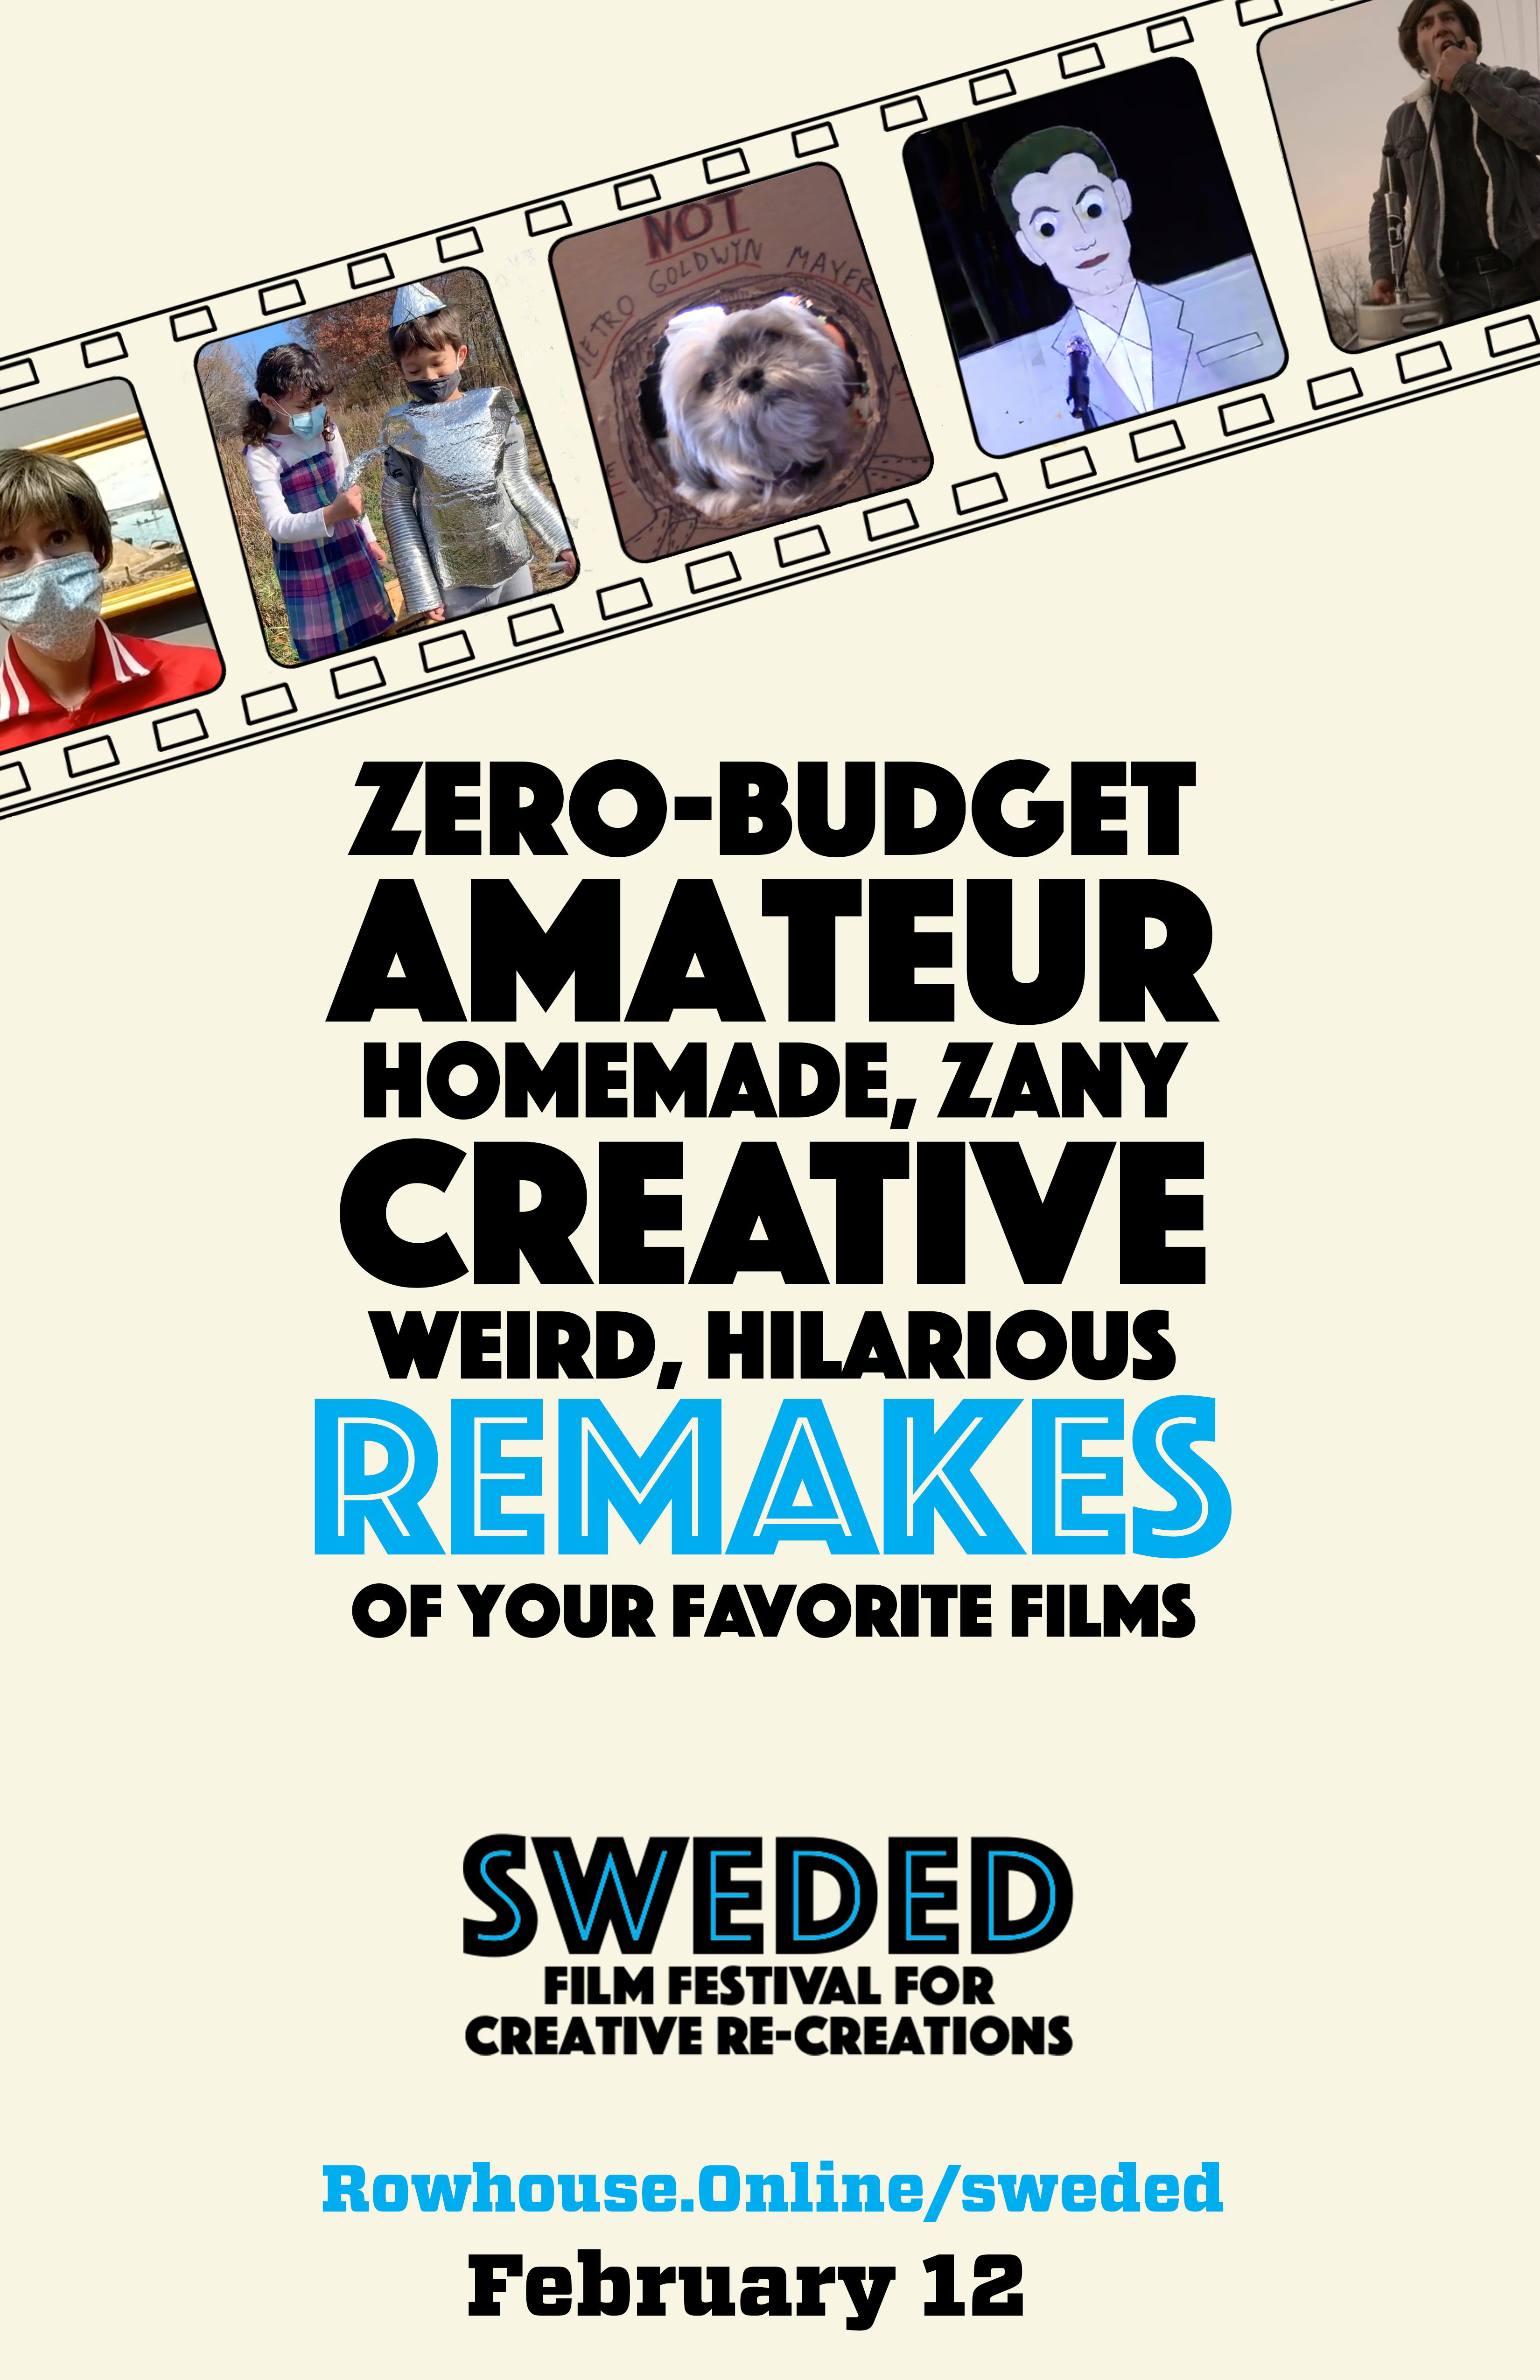 The Fourth Annual Sweded Film Festival